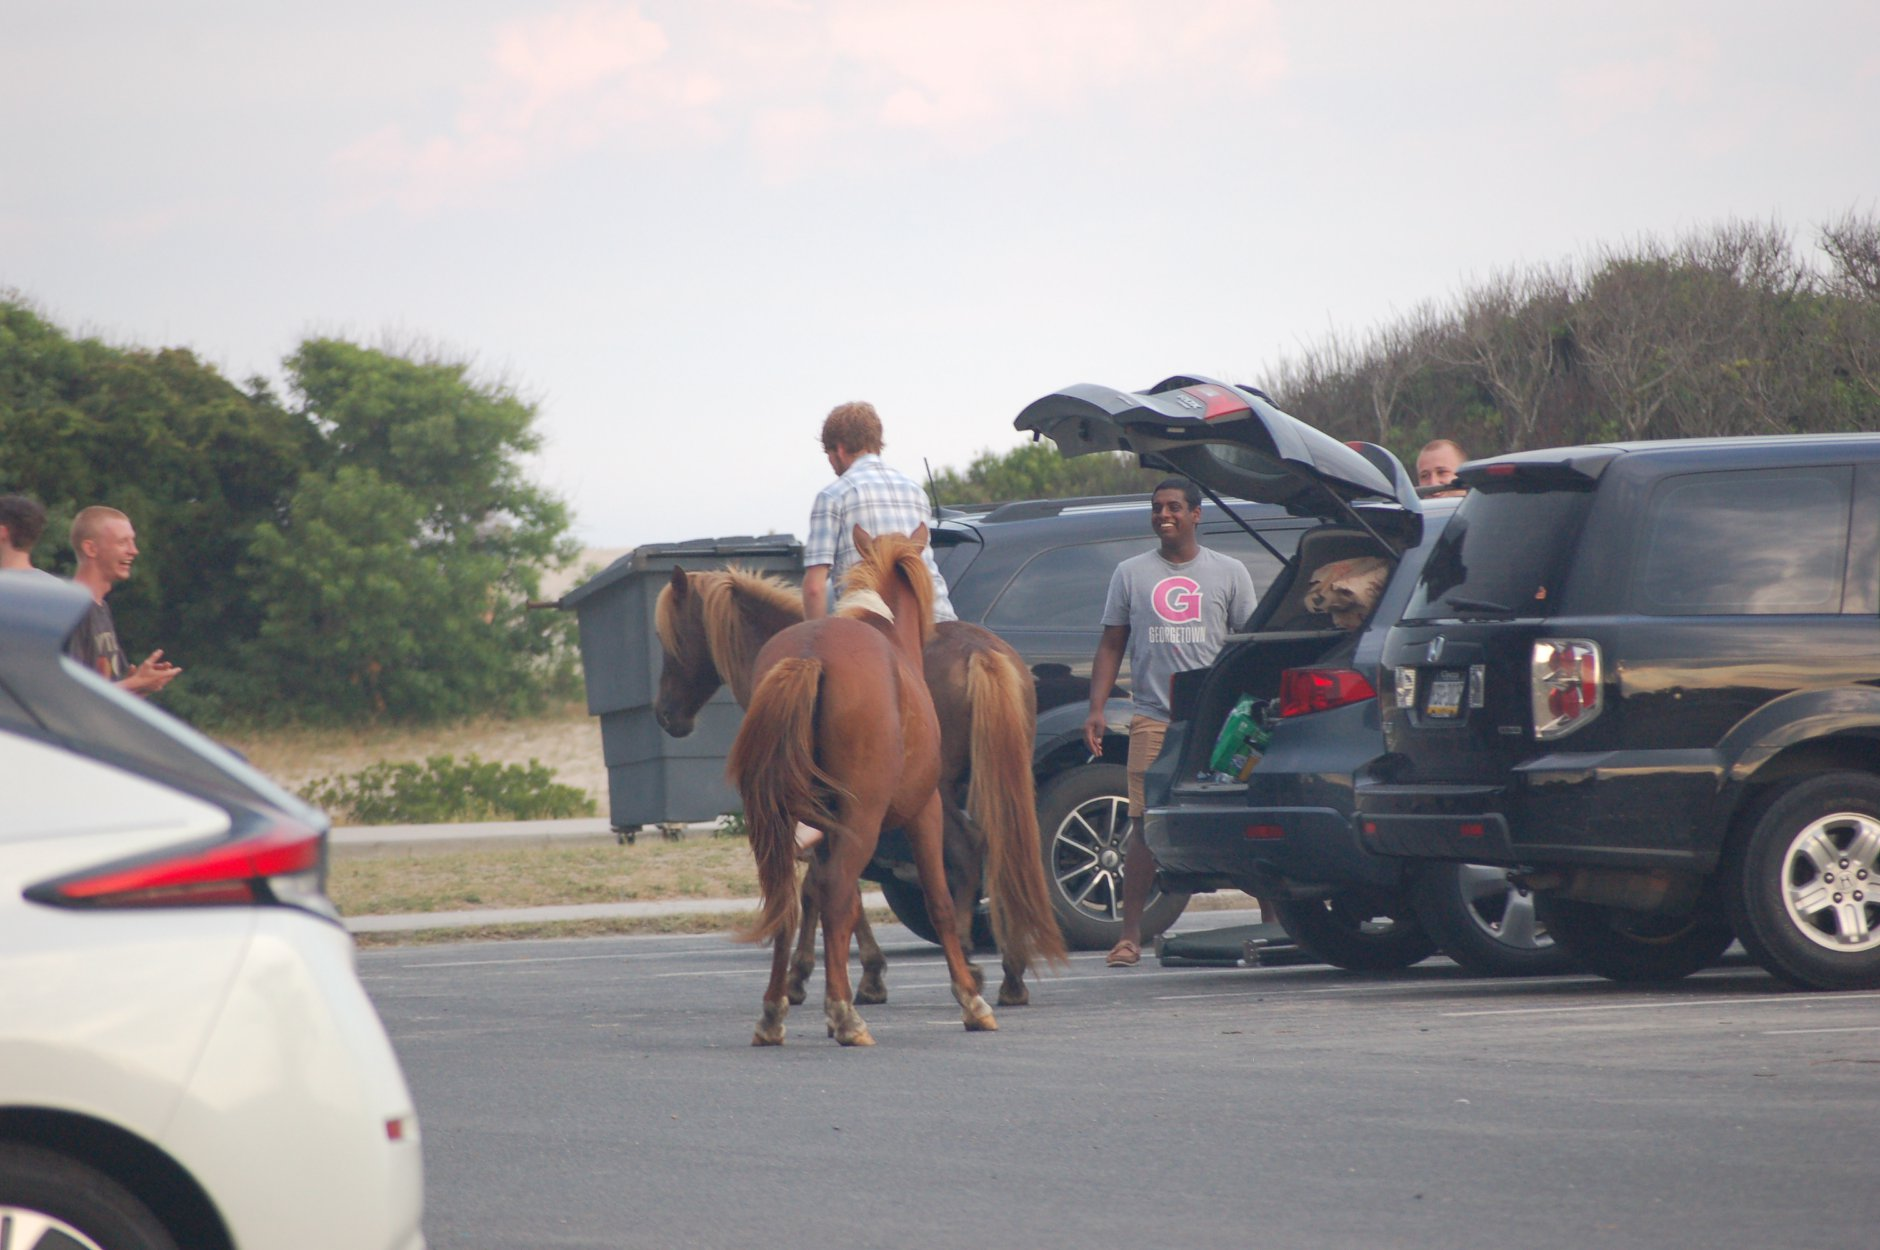 Man Charged For Riding Wild Horse On Assateague; Officials Offer Safety Reminders Ahead Of Weekend